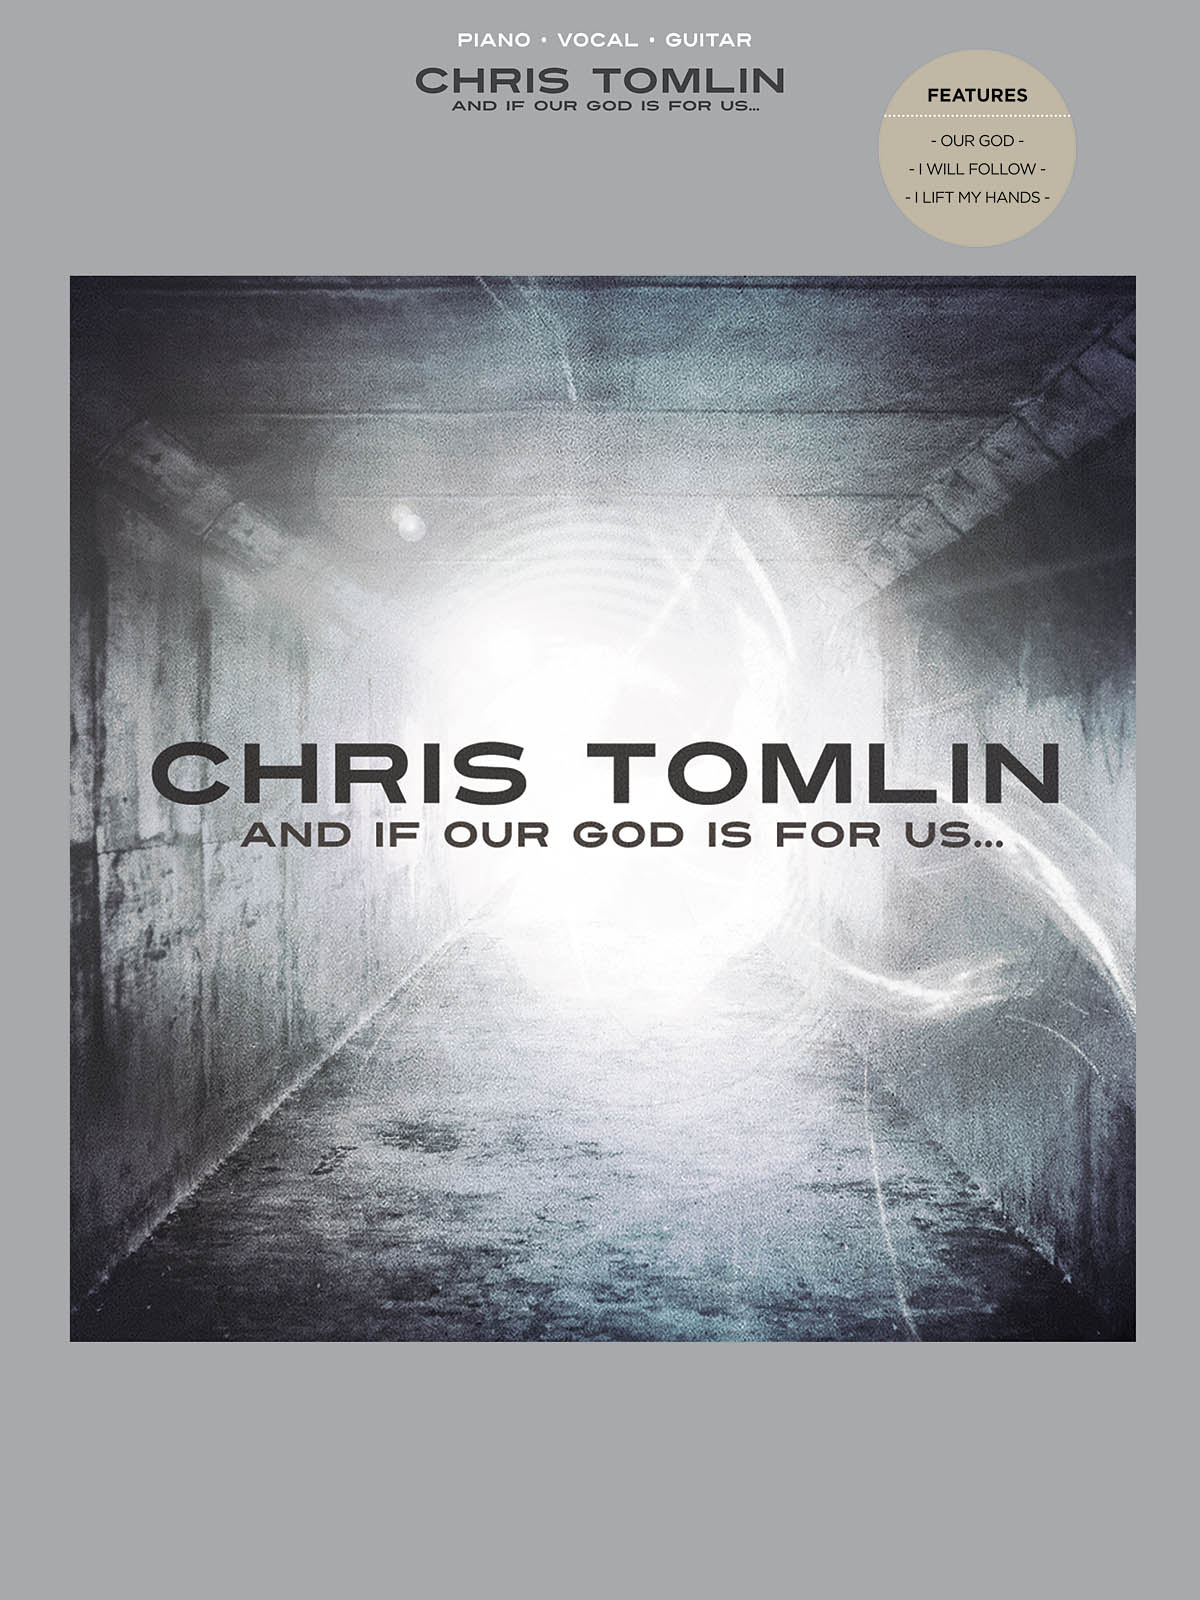 Chris Tomlin - And If Our God Is for Us: Piano  Vocal  Guitar: